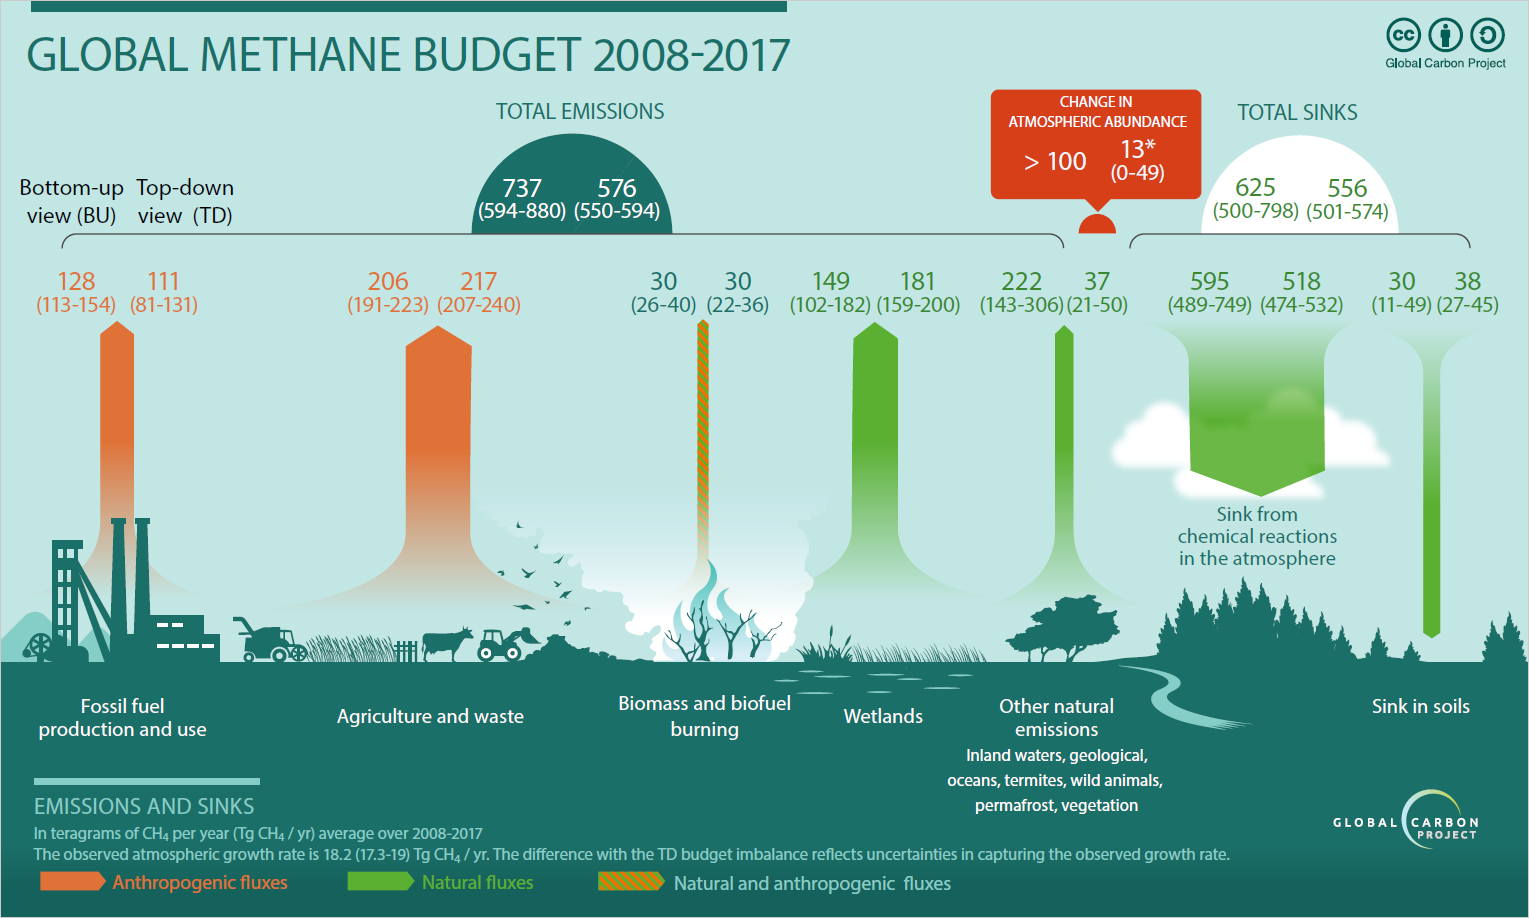 Graphic of the global methane budget from 2008 to 2017: The chart shows how total emissions are broken down by source, the majority coming from agriculture and waste and, to a lesser degree, fossil fuel production and use, wetlands, and biomass burning. The carbon sinks listed are forests and soils.